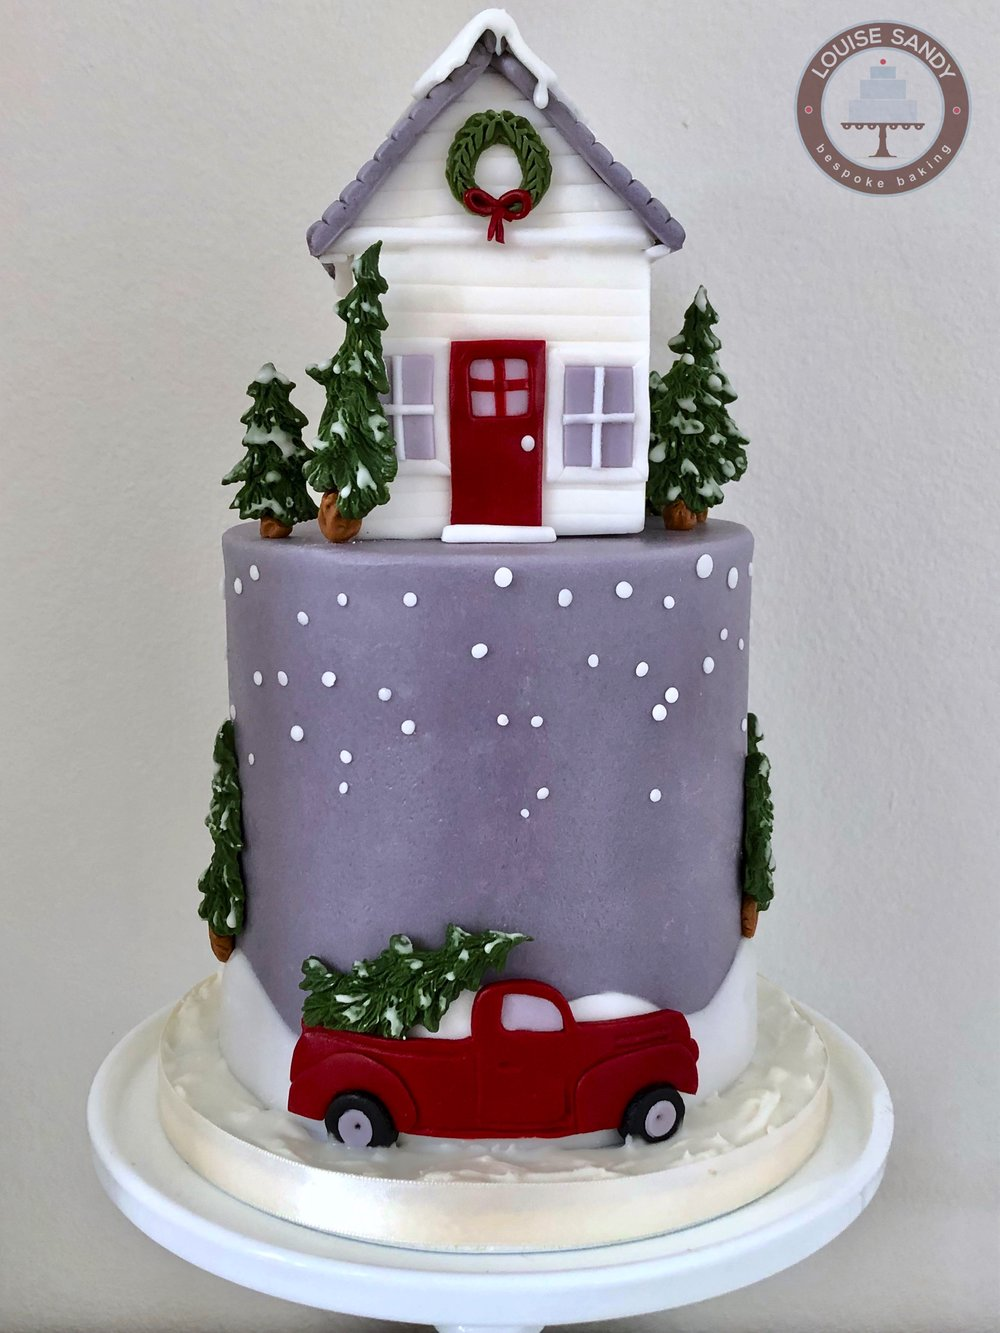 """Home for the Holidays"" Christmas Cake, with Red Truck delivering Christmas Tree"